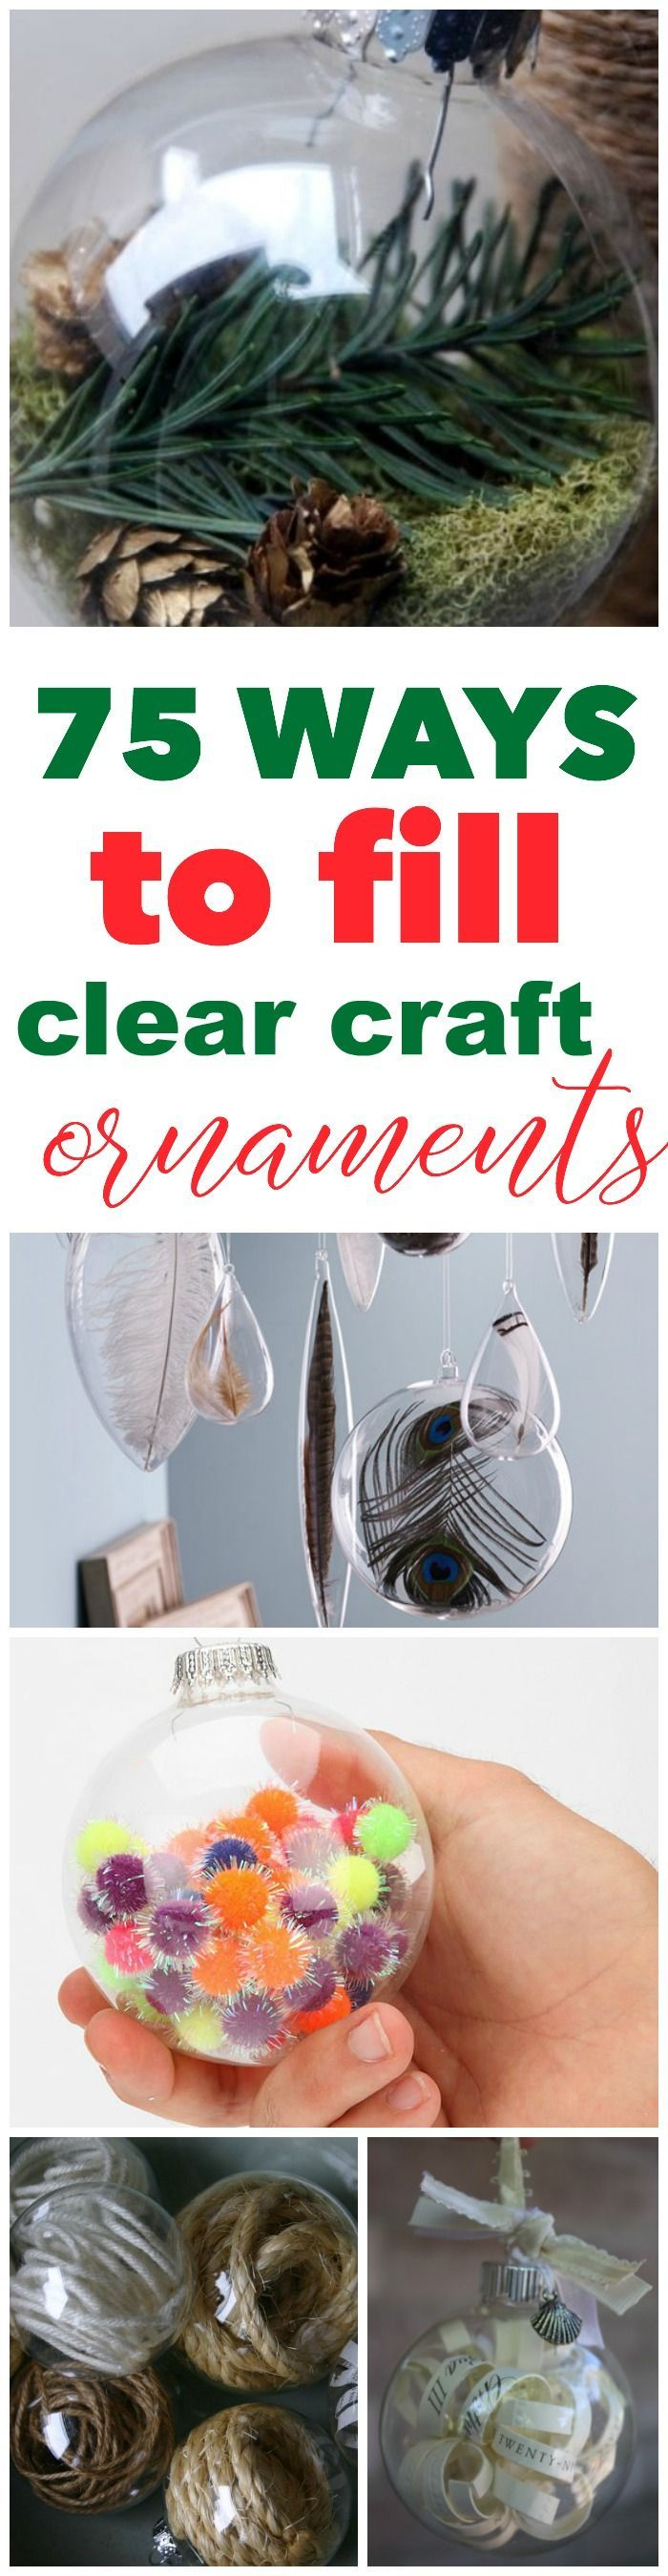 75 ways to fill clear glass ornaments   homemade christmas ornaments   refunk my junk christmas